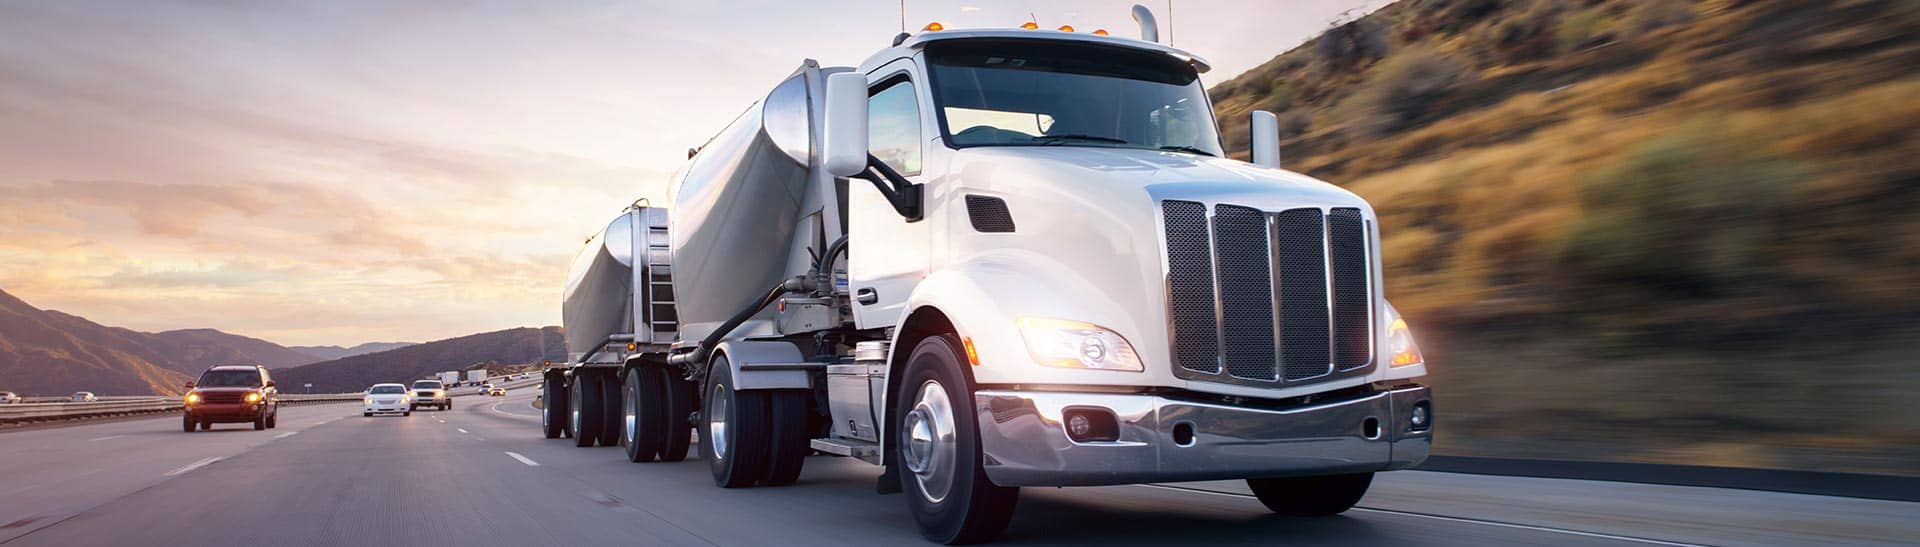 College Park Trucking Company, Trucking Services and Transportation Logistics